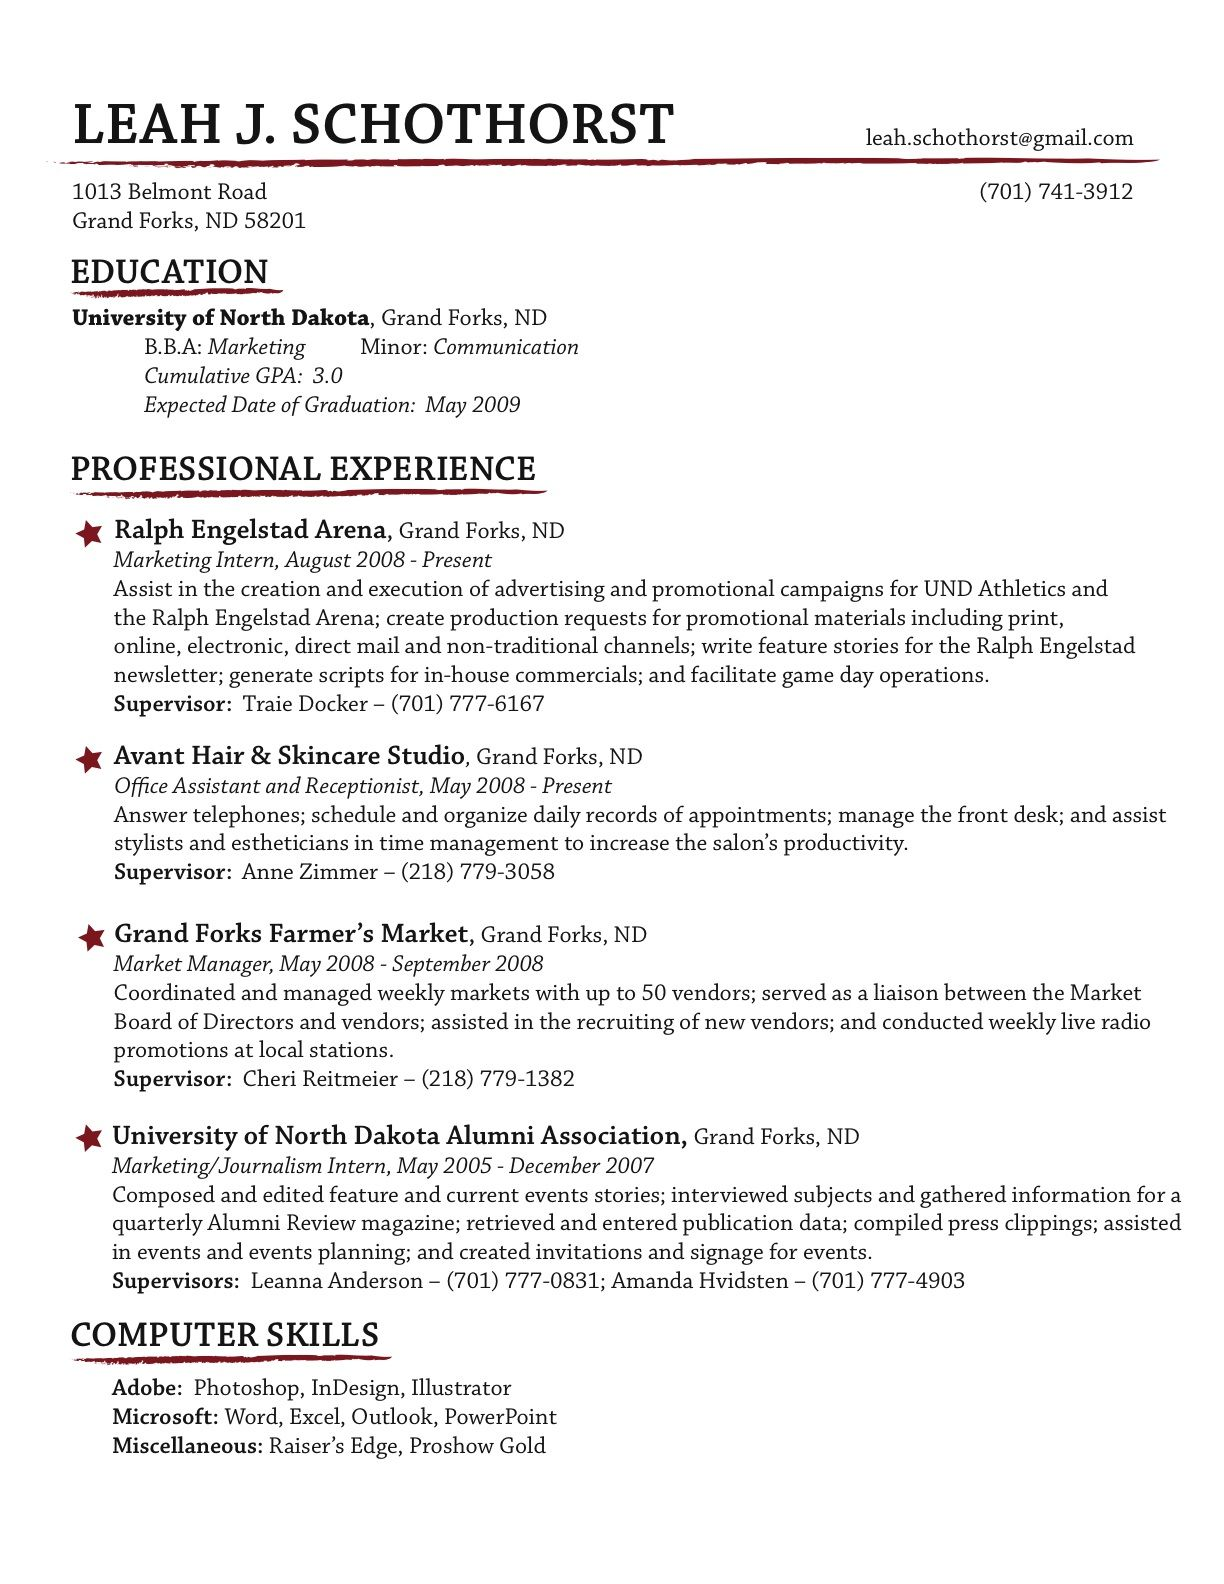 resume How Do You Make A Resume creative resume would do misc skills rather than computer